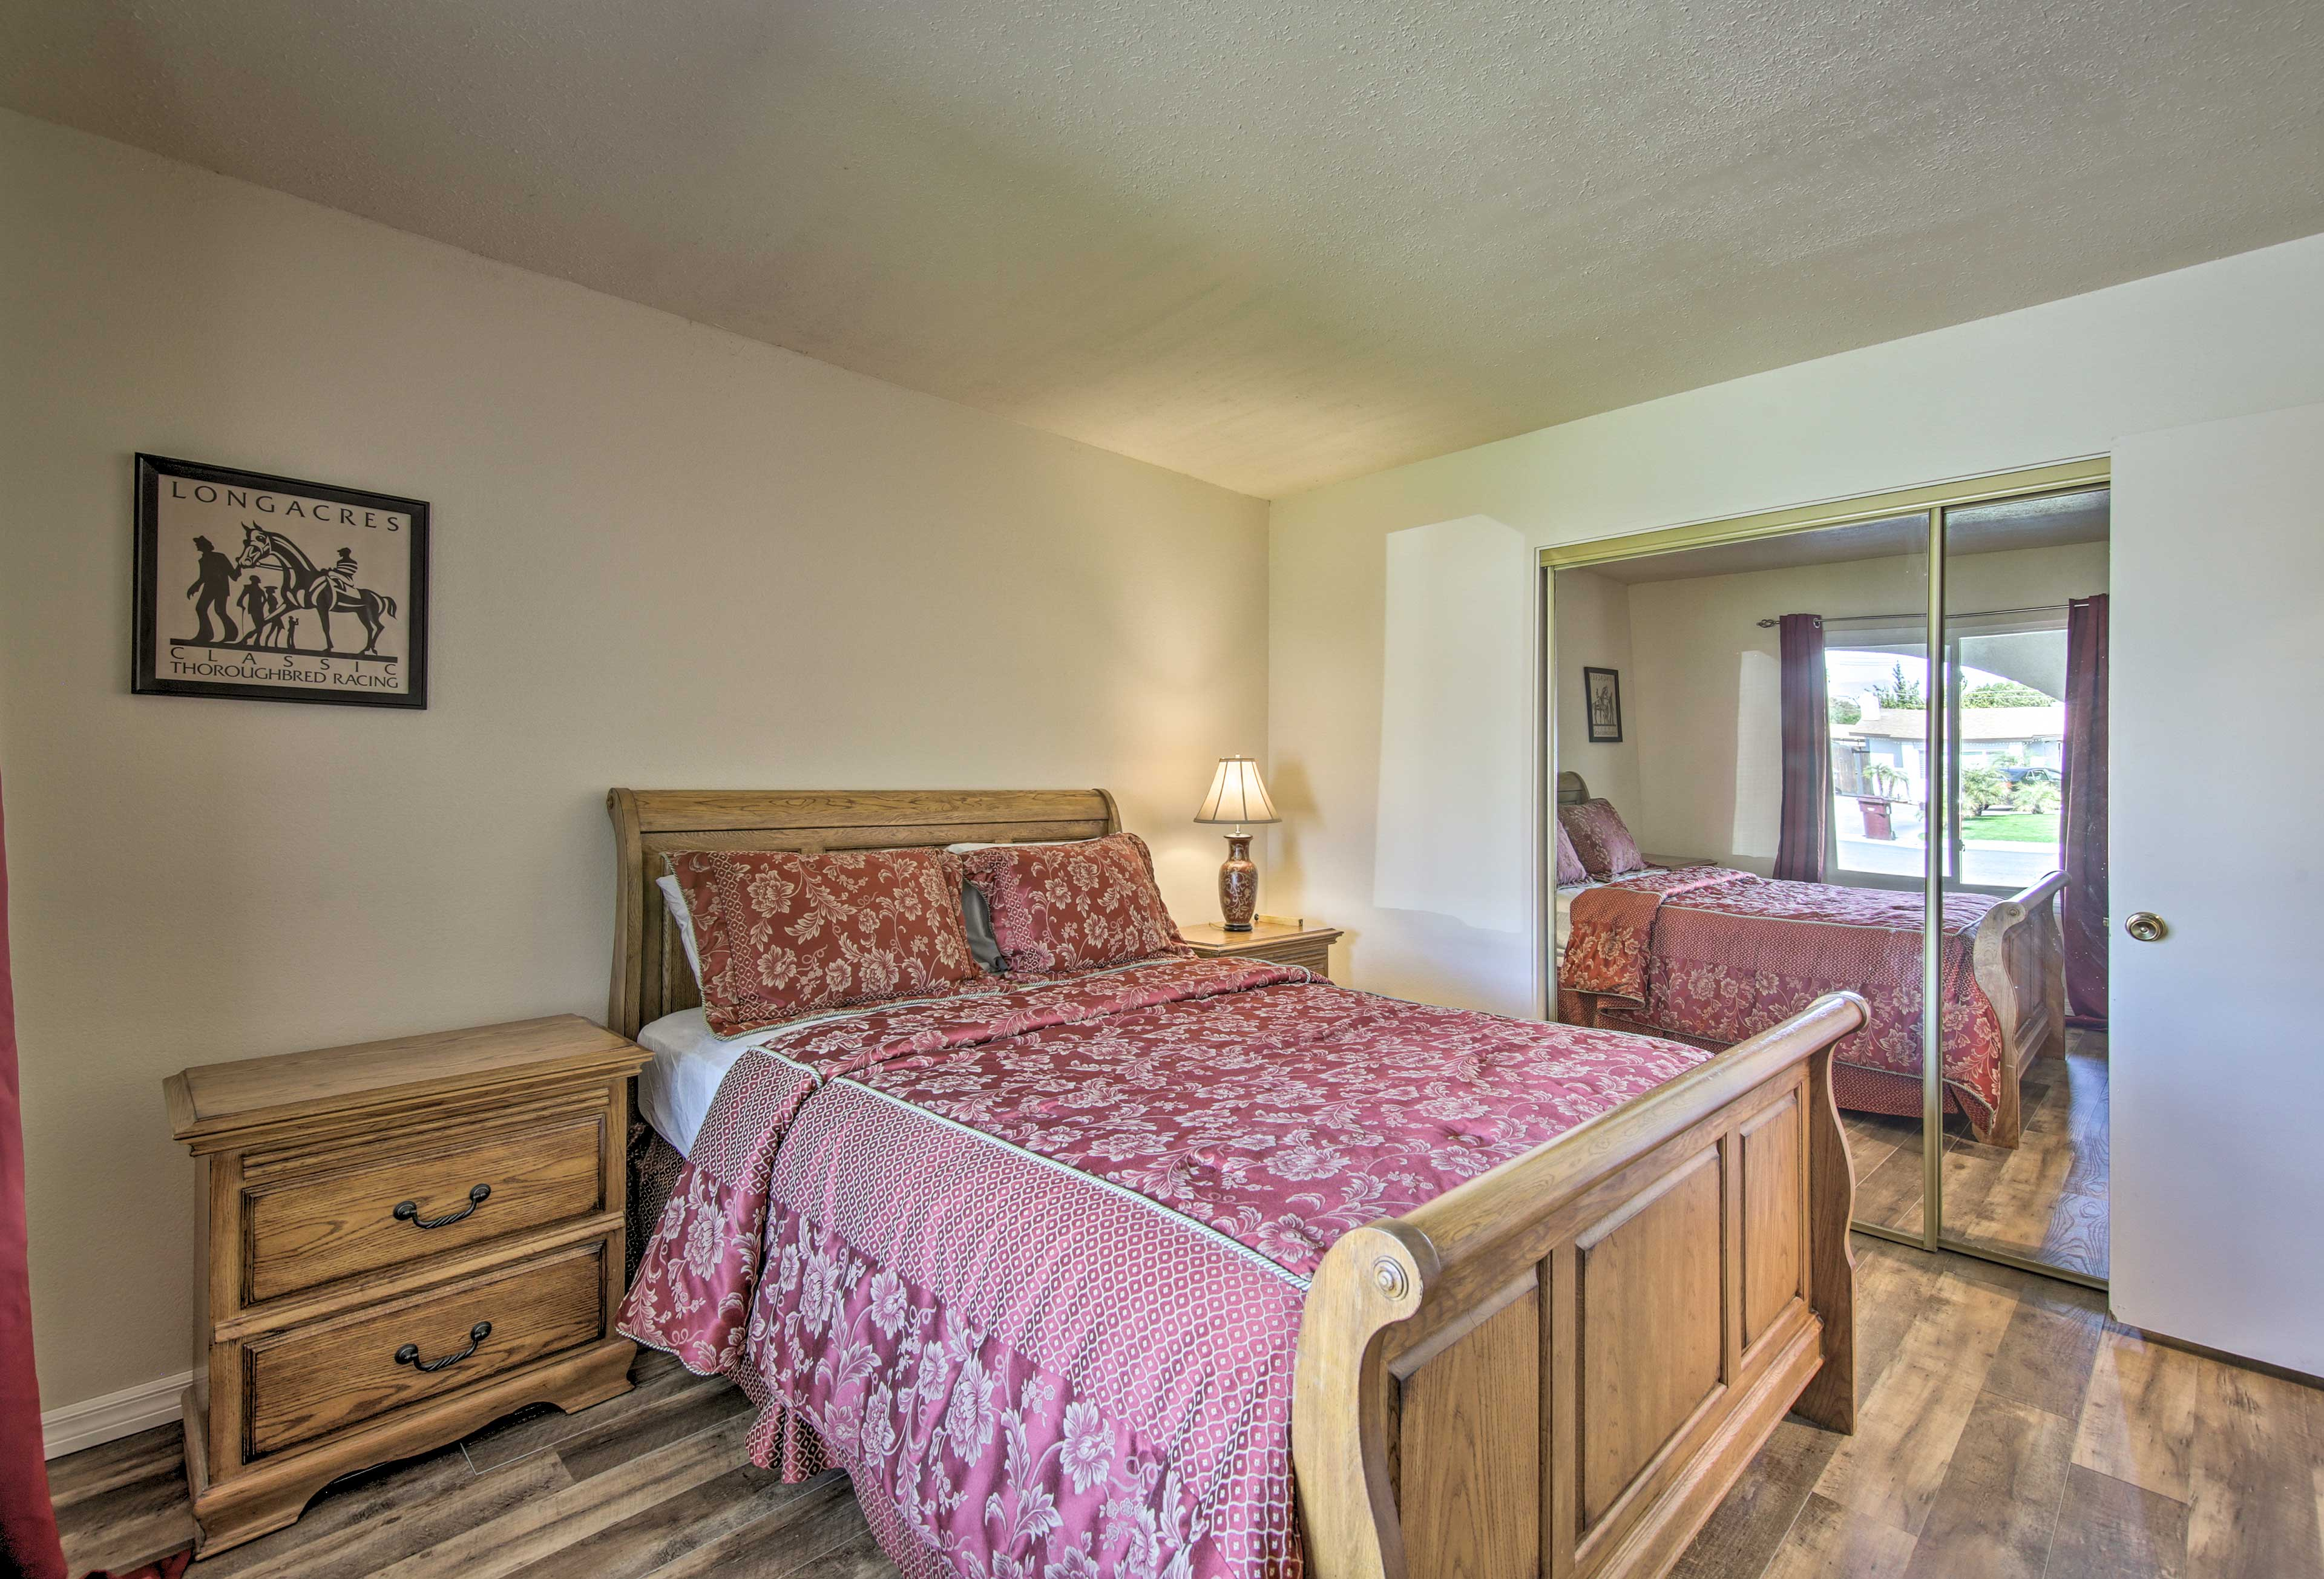 The second bedroom is complete with a queen-sized bed.